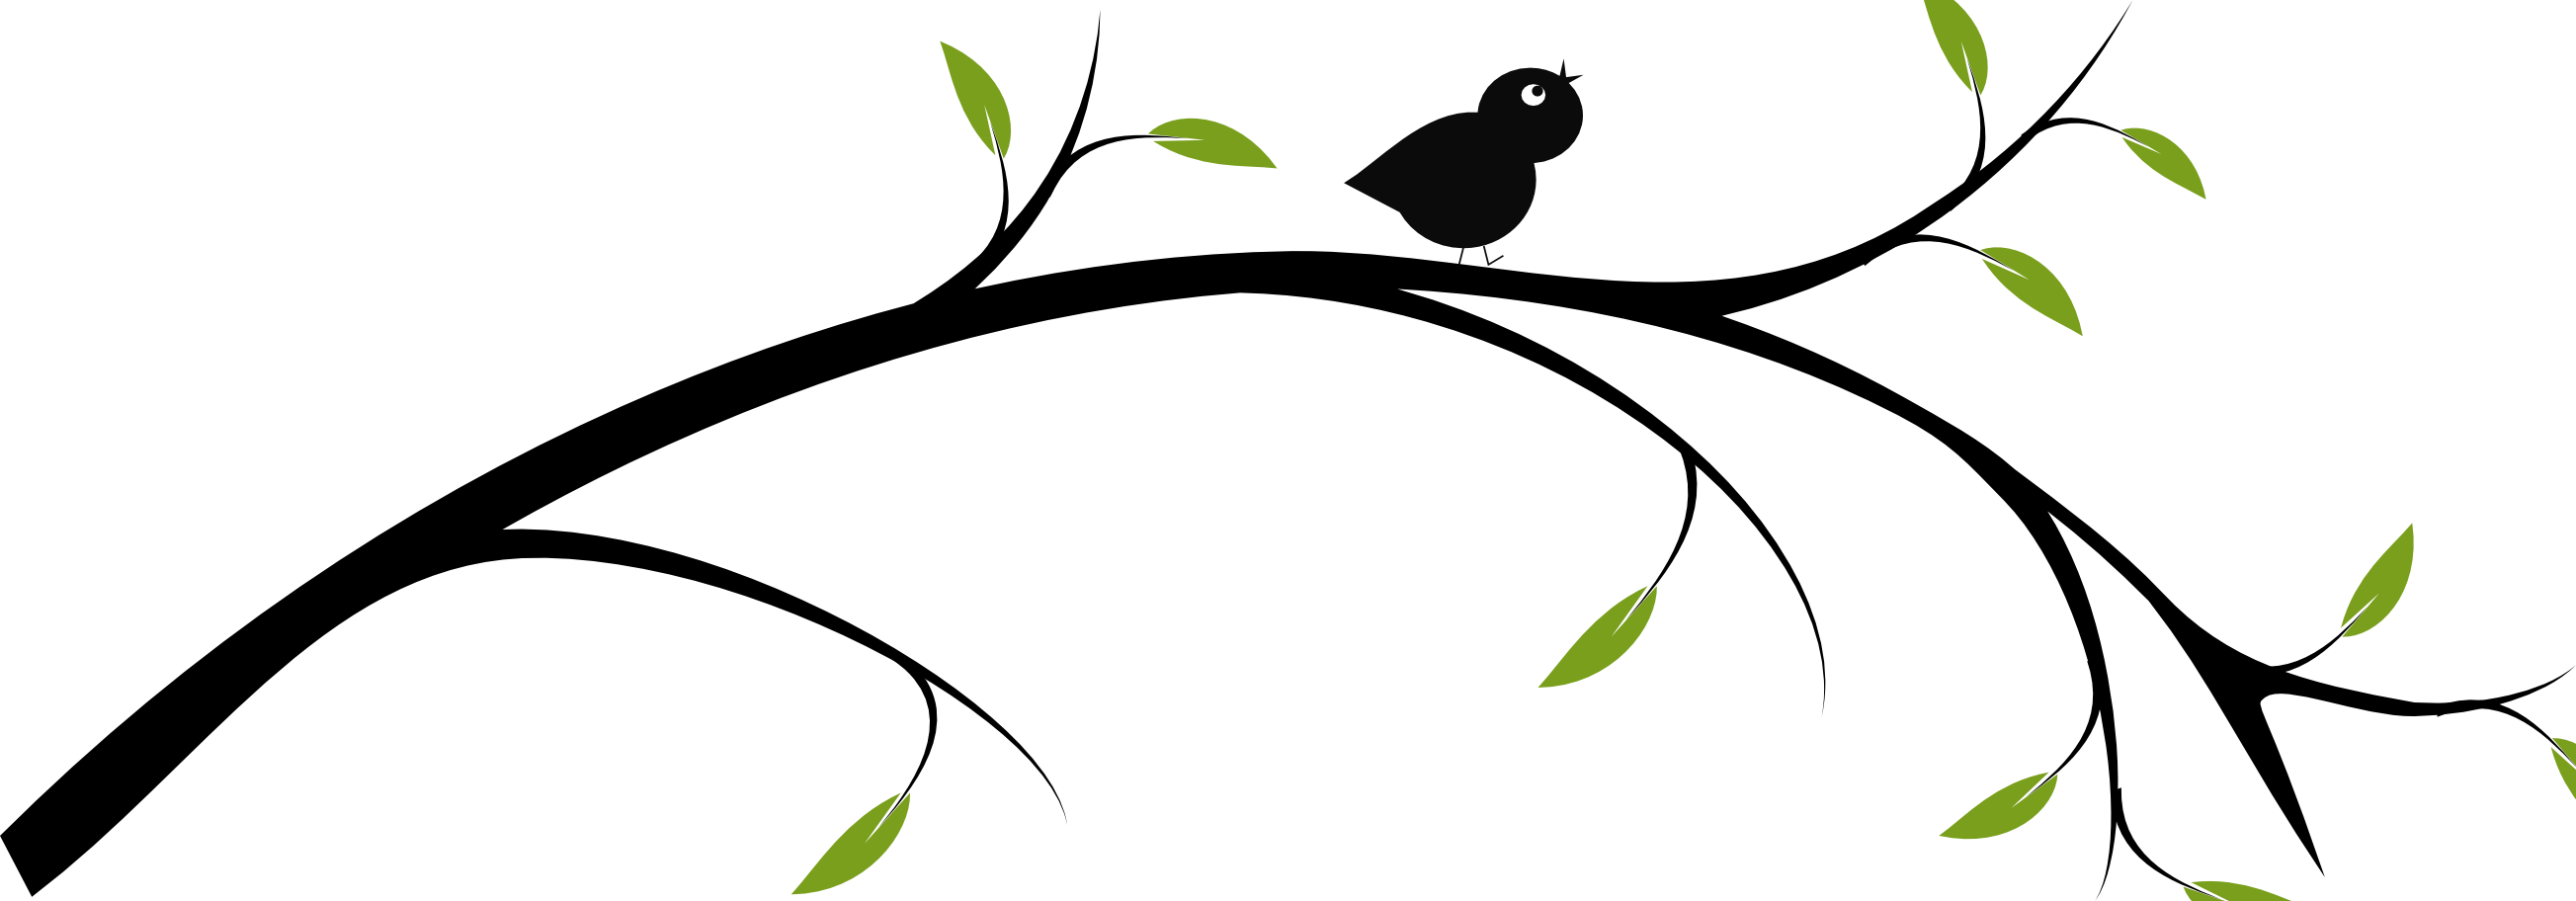 Tree branch vector png. Inkscape tutorial how to